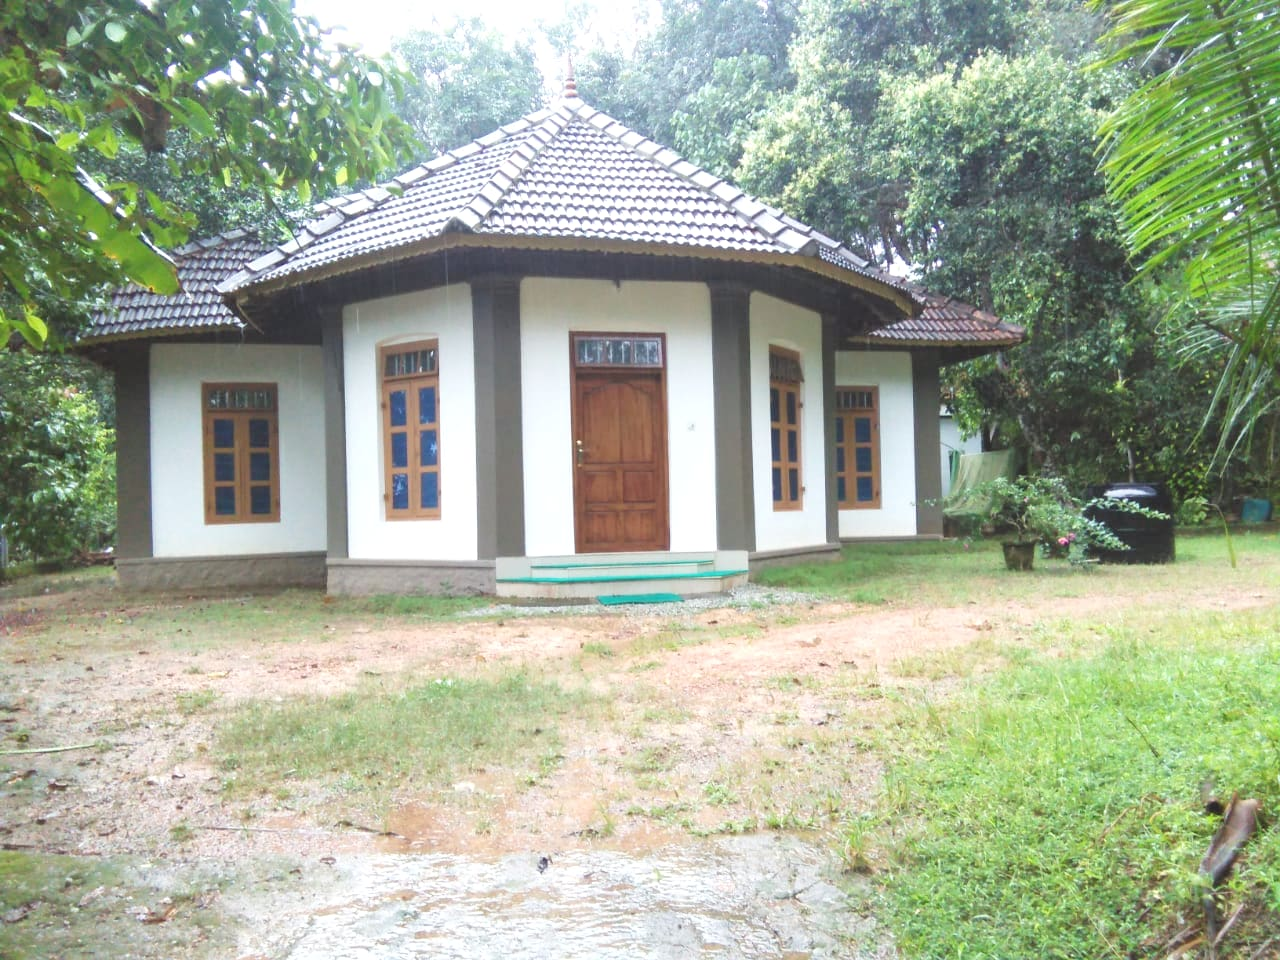 A Kerala style traditional house renovated with modern aminities located on a hill